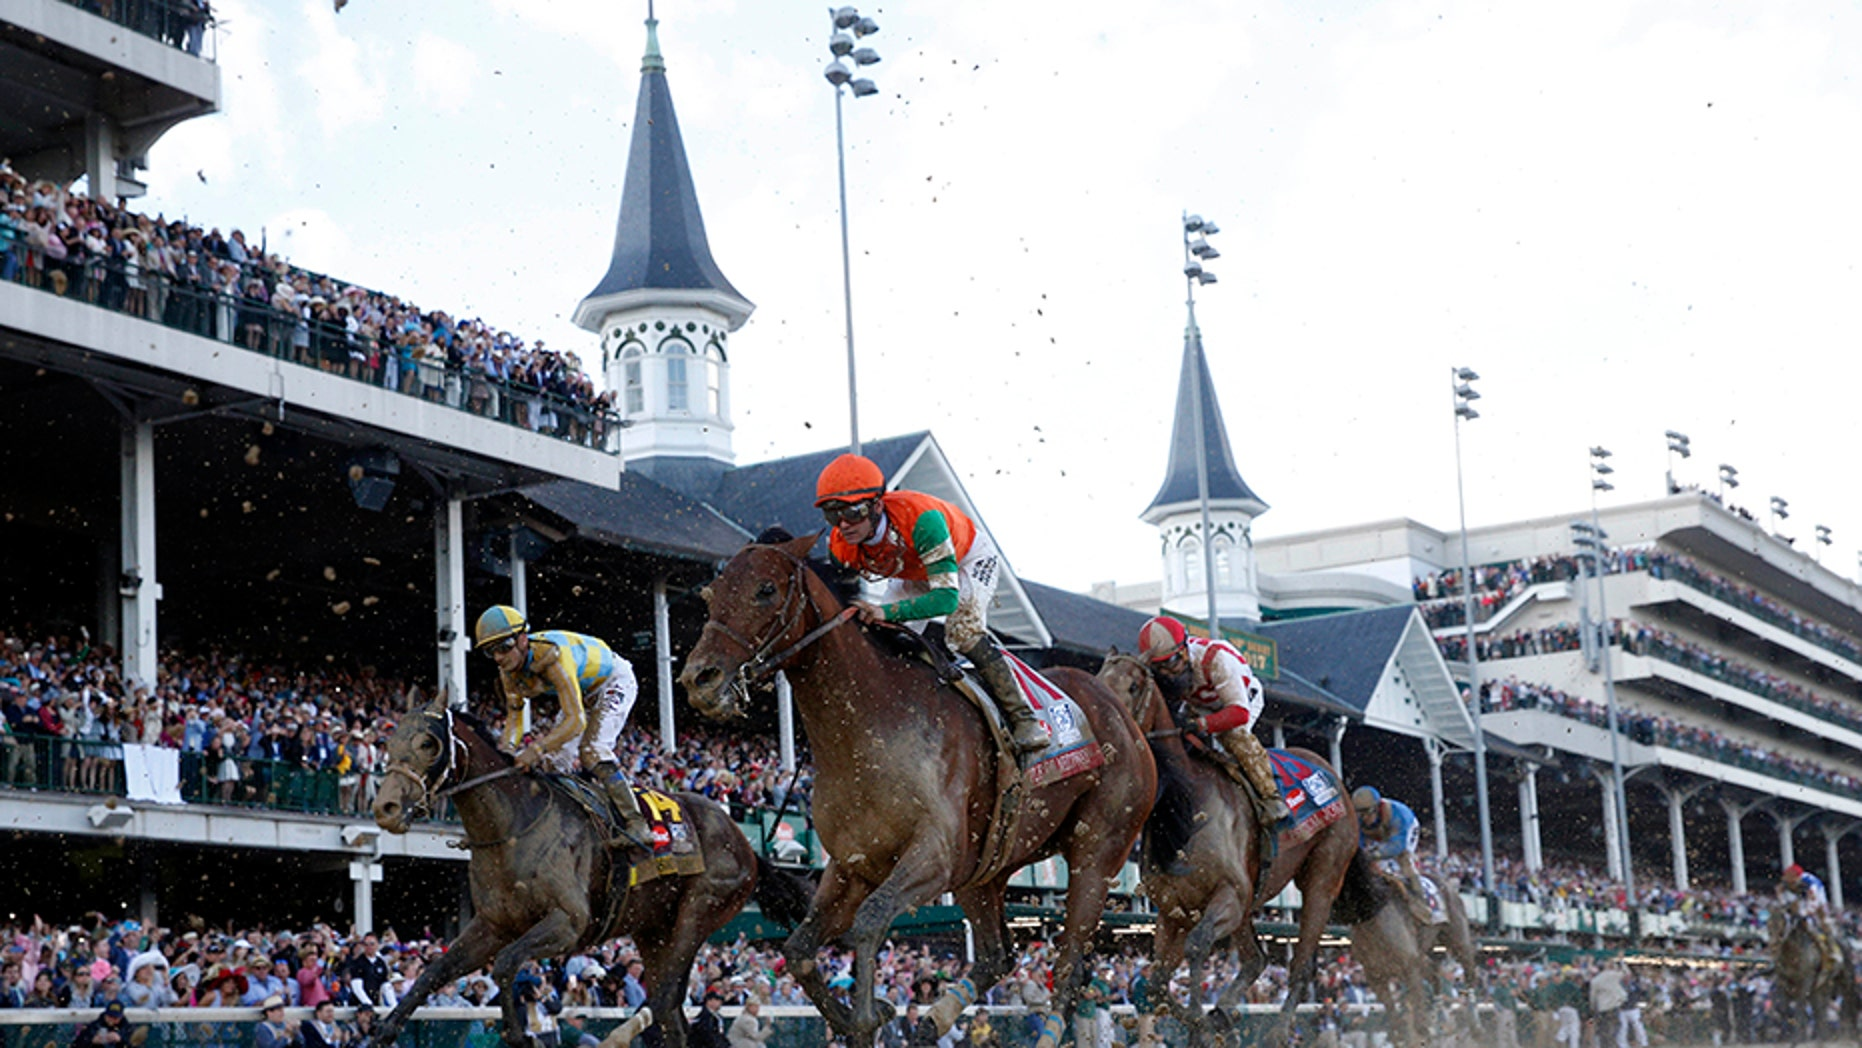 Flavien Prat aboard Battle of Midway (11) races to the finish of the 2017 Kentucky Derby at Churchill Downs.